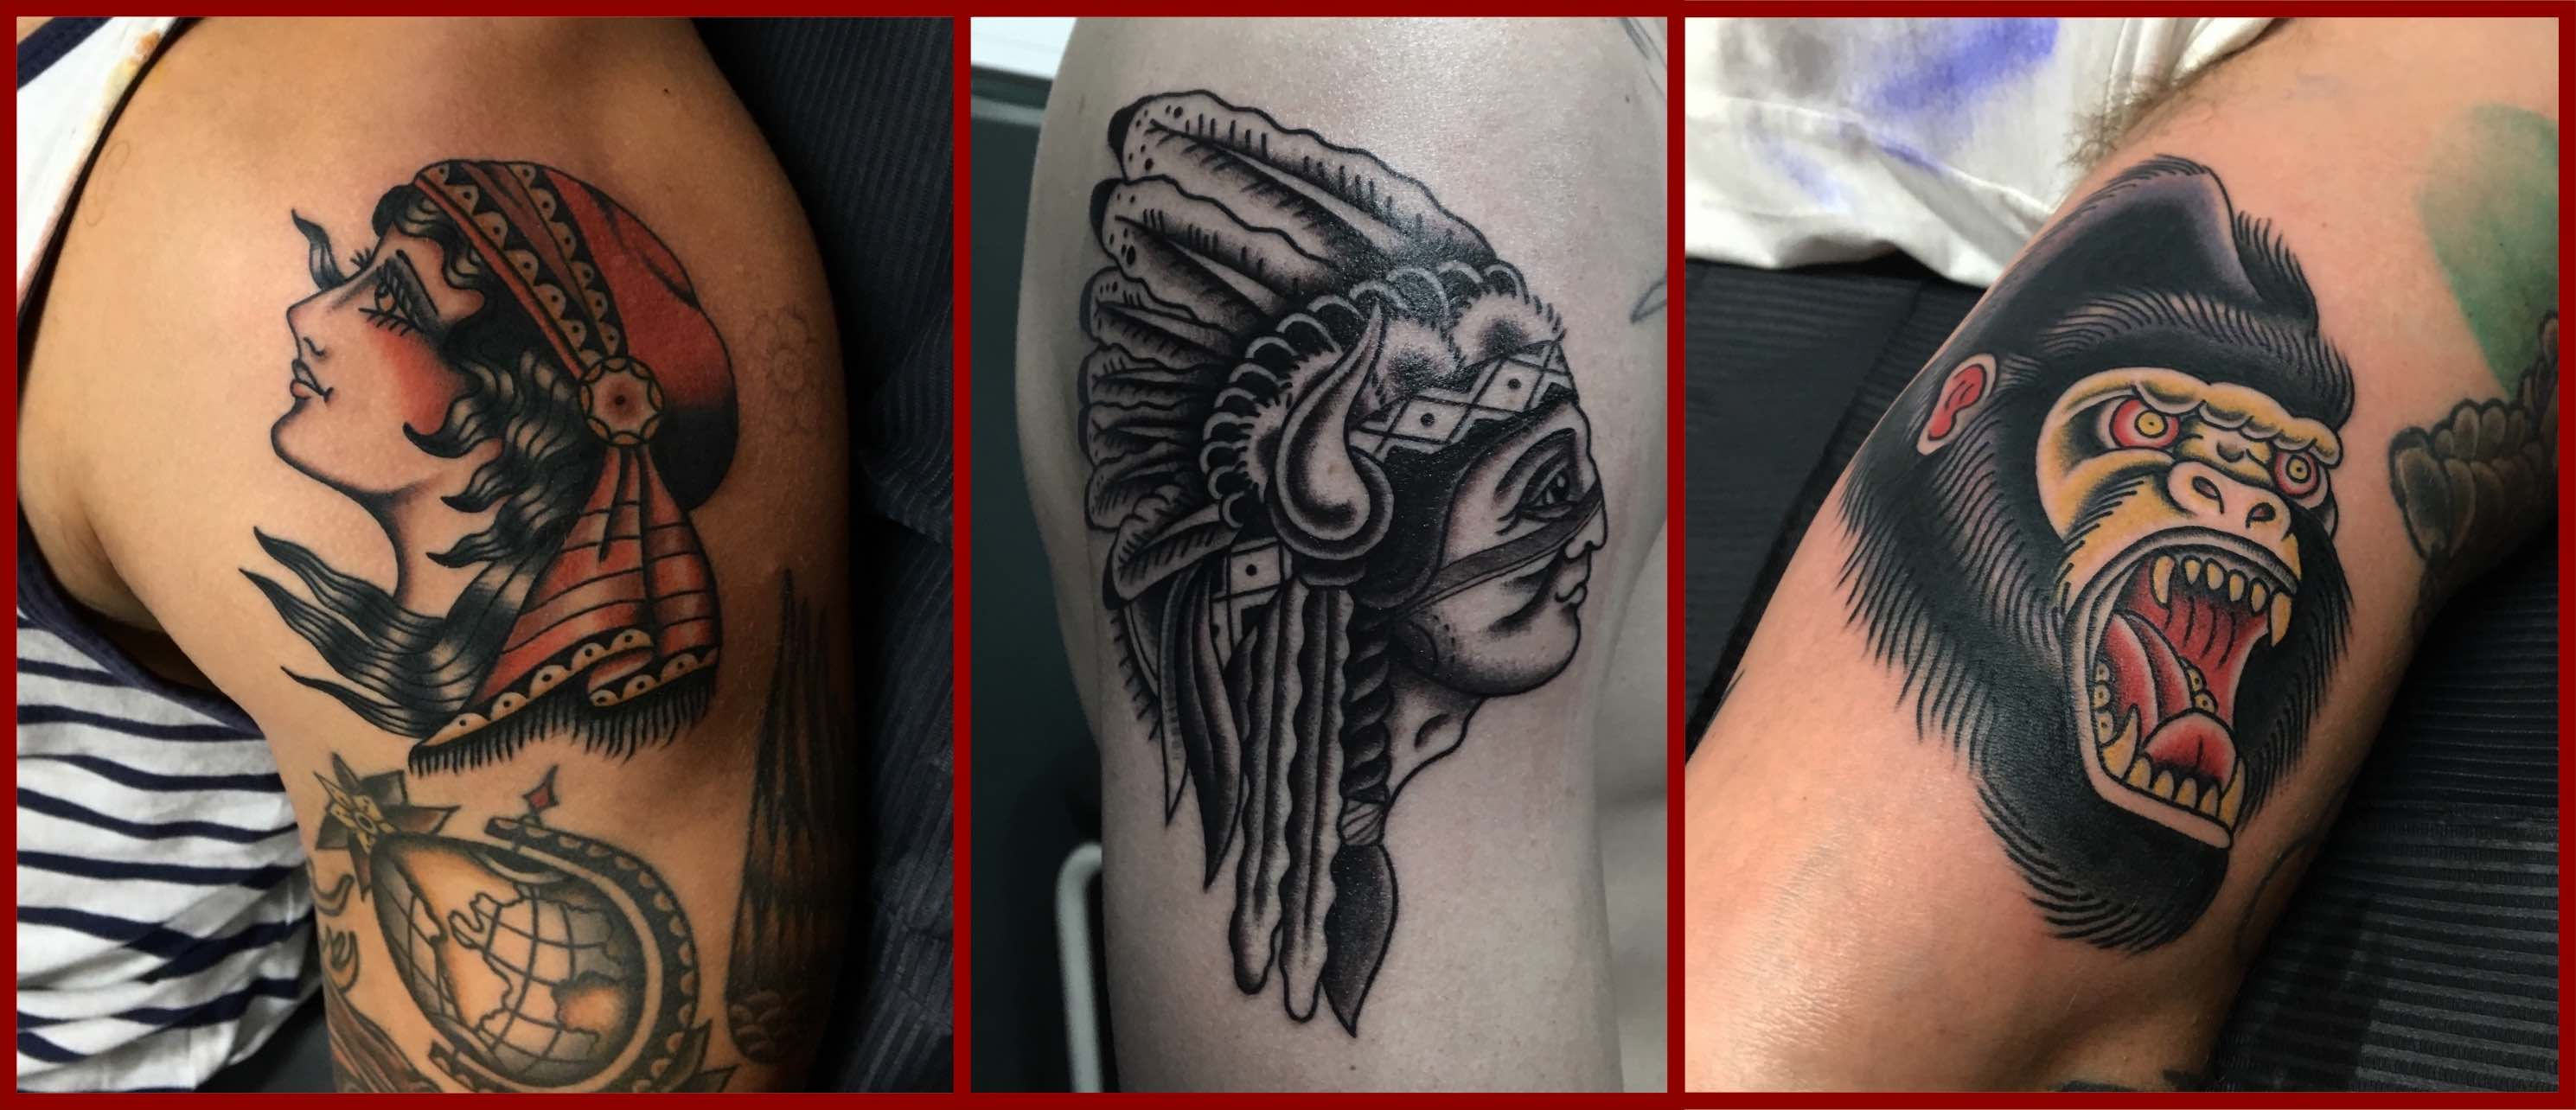 A selection of Tattoos done by Wesley von Blerk